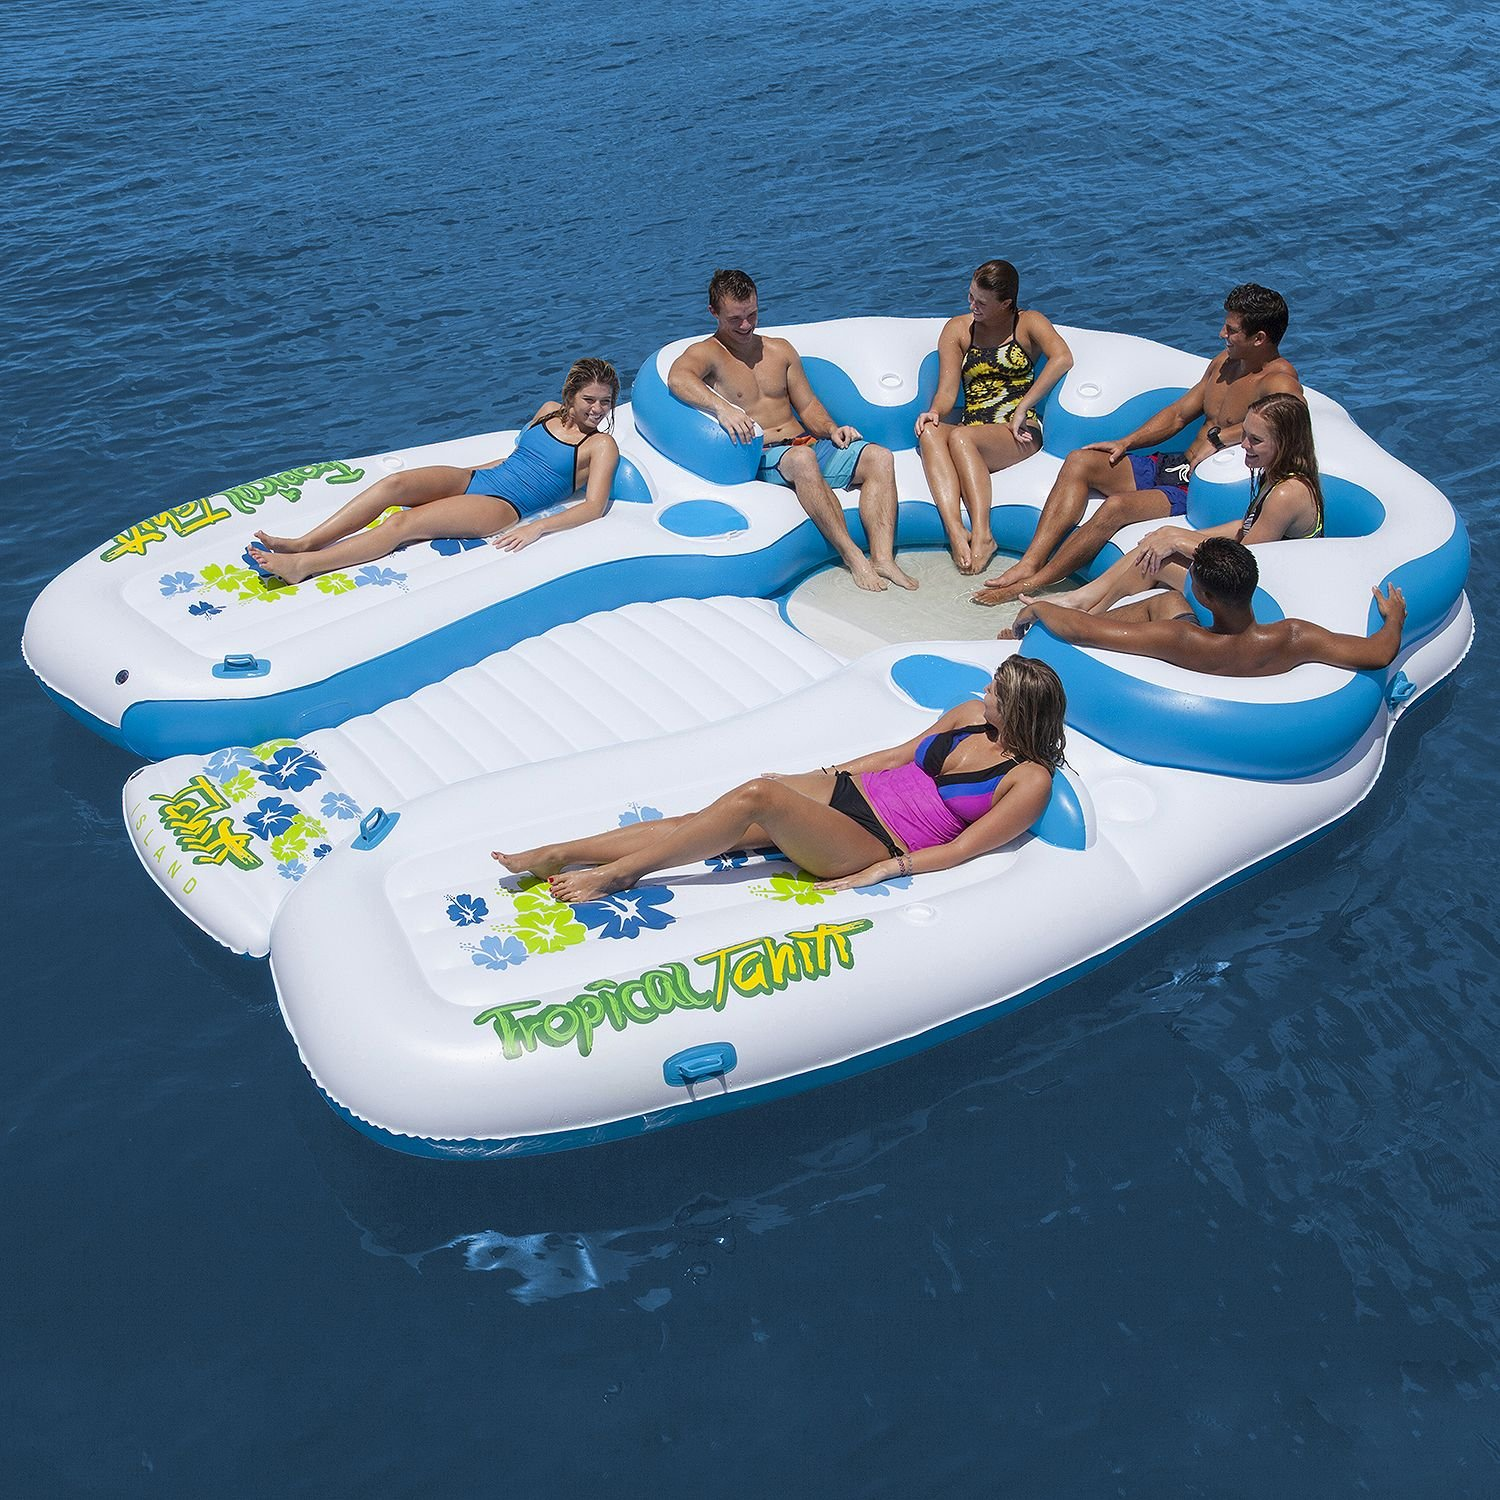 Tropical Tahiti Floating Island 7 Person Inflatable Raft by Tropical Tahiti